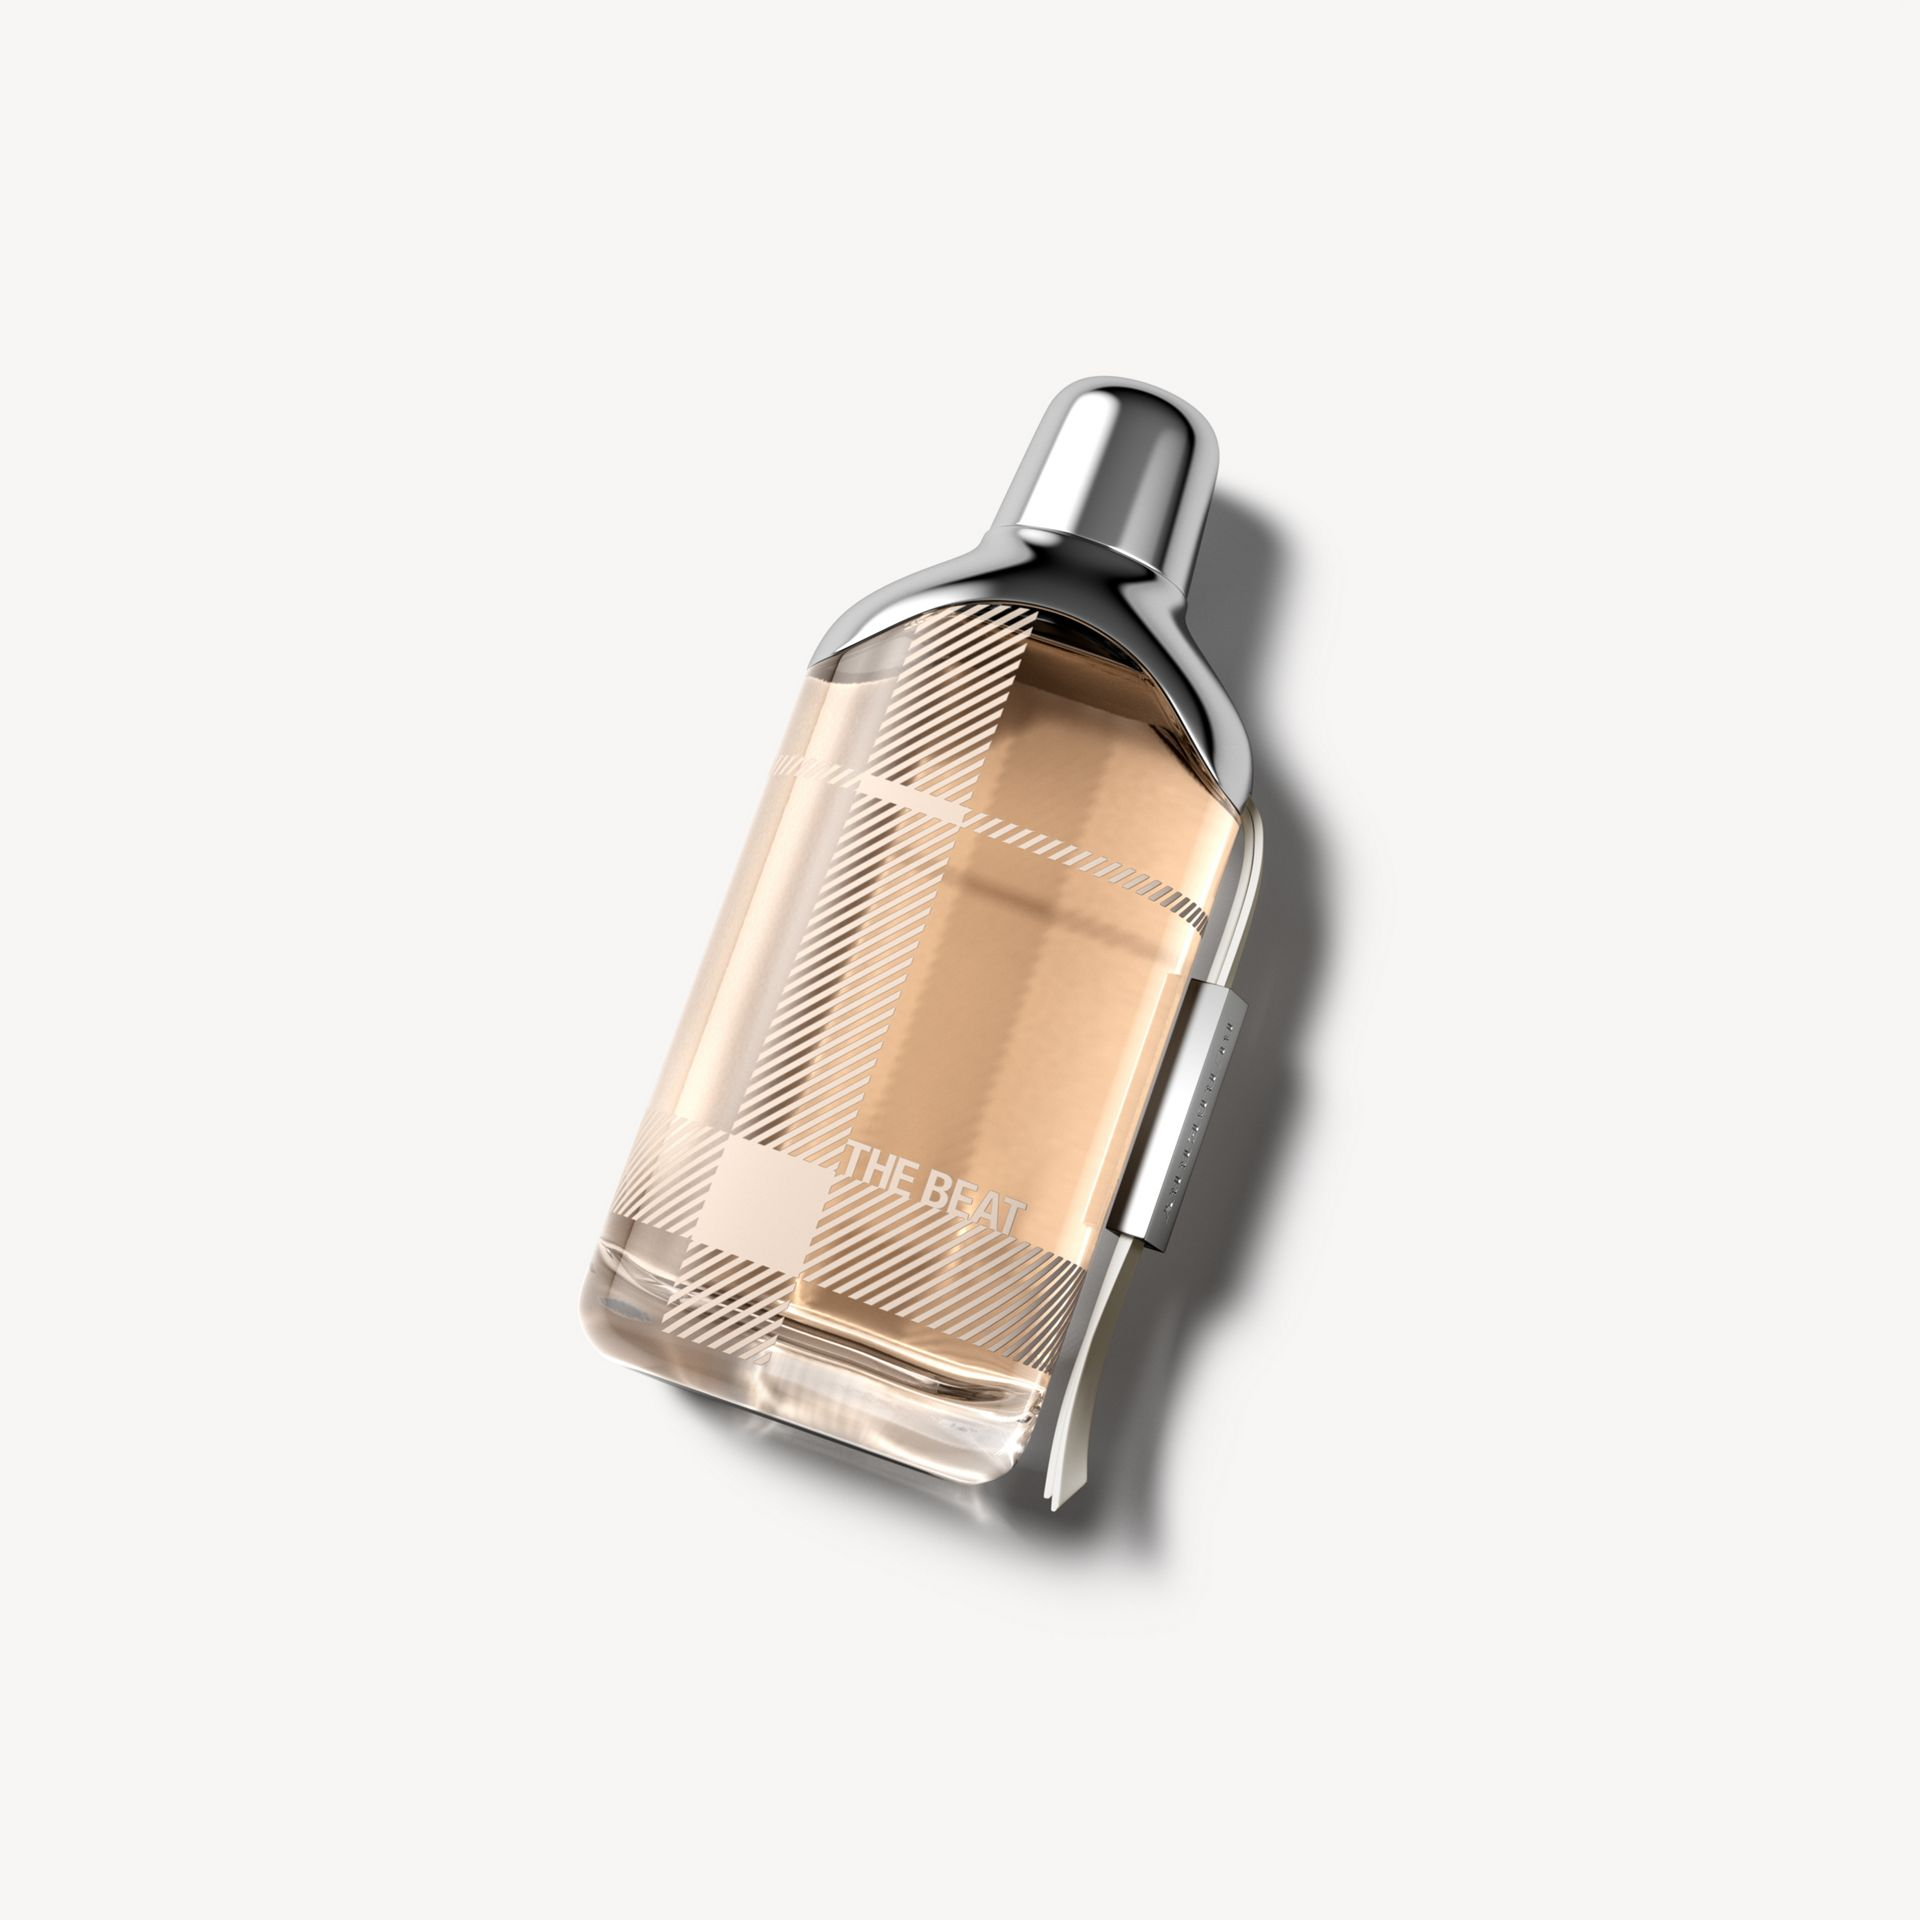 Burberry The Beat Eau de Parfum 75 ml - Donna | Burberry - immagine della galleria 0